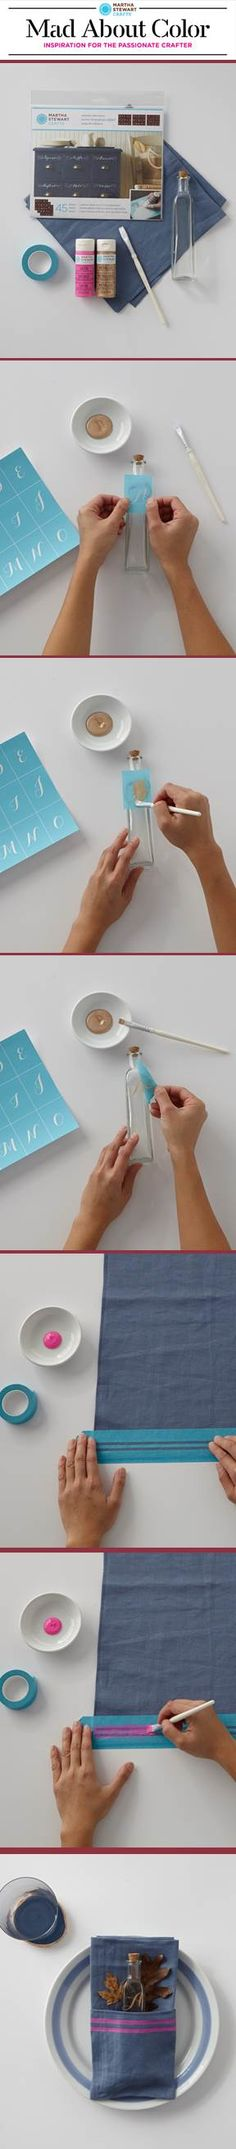 Personalize a place setting with paints from #marthastewartcrafts #madaboutcolor